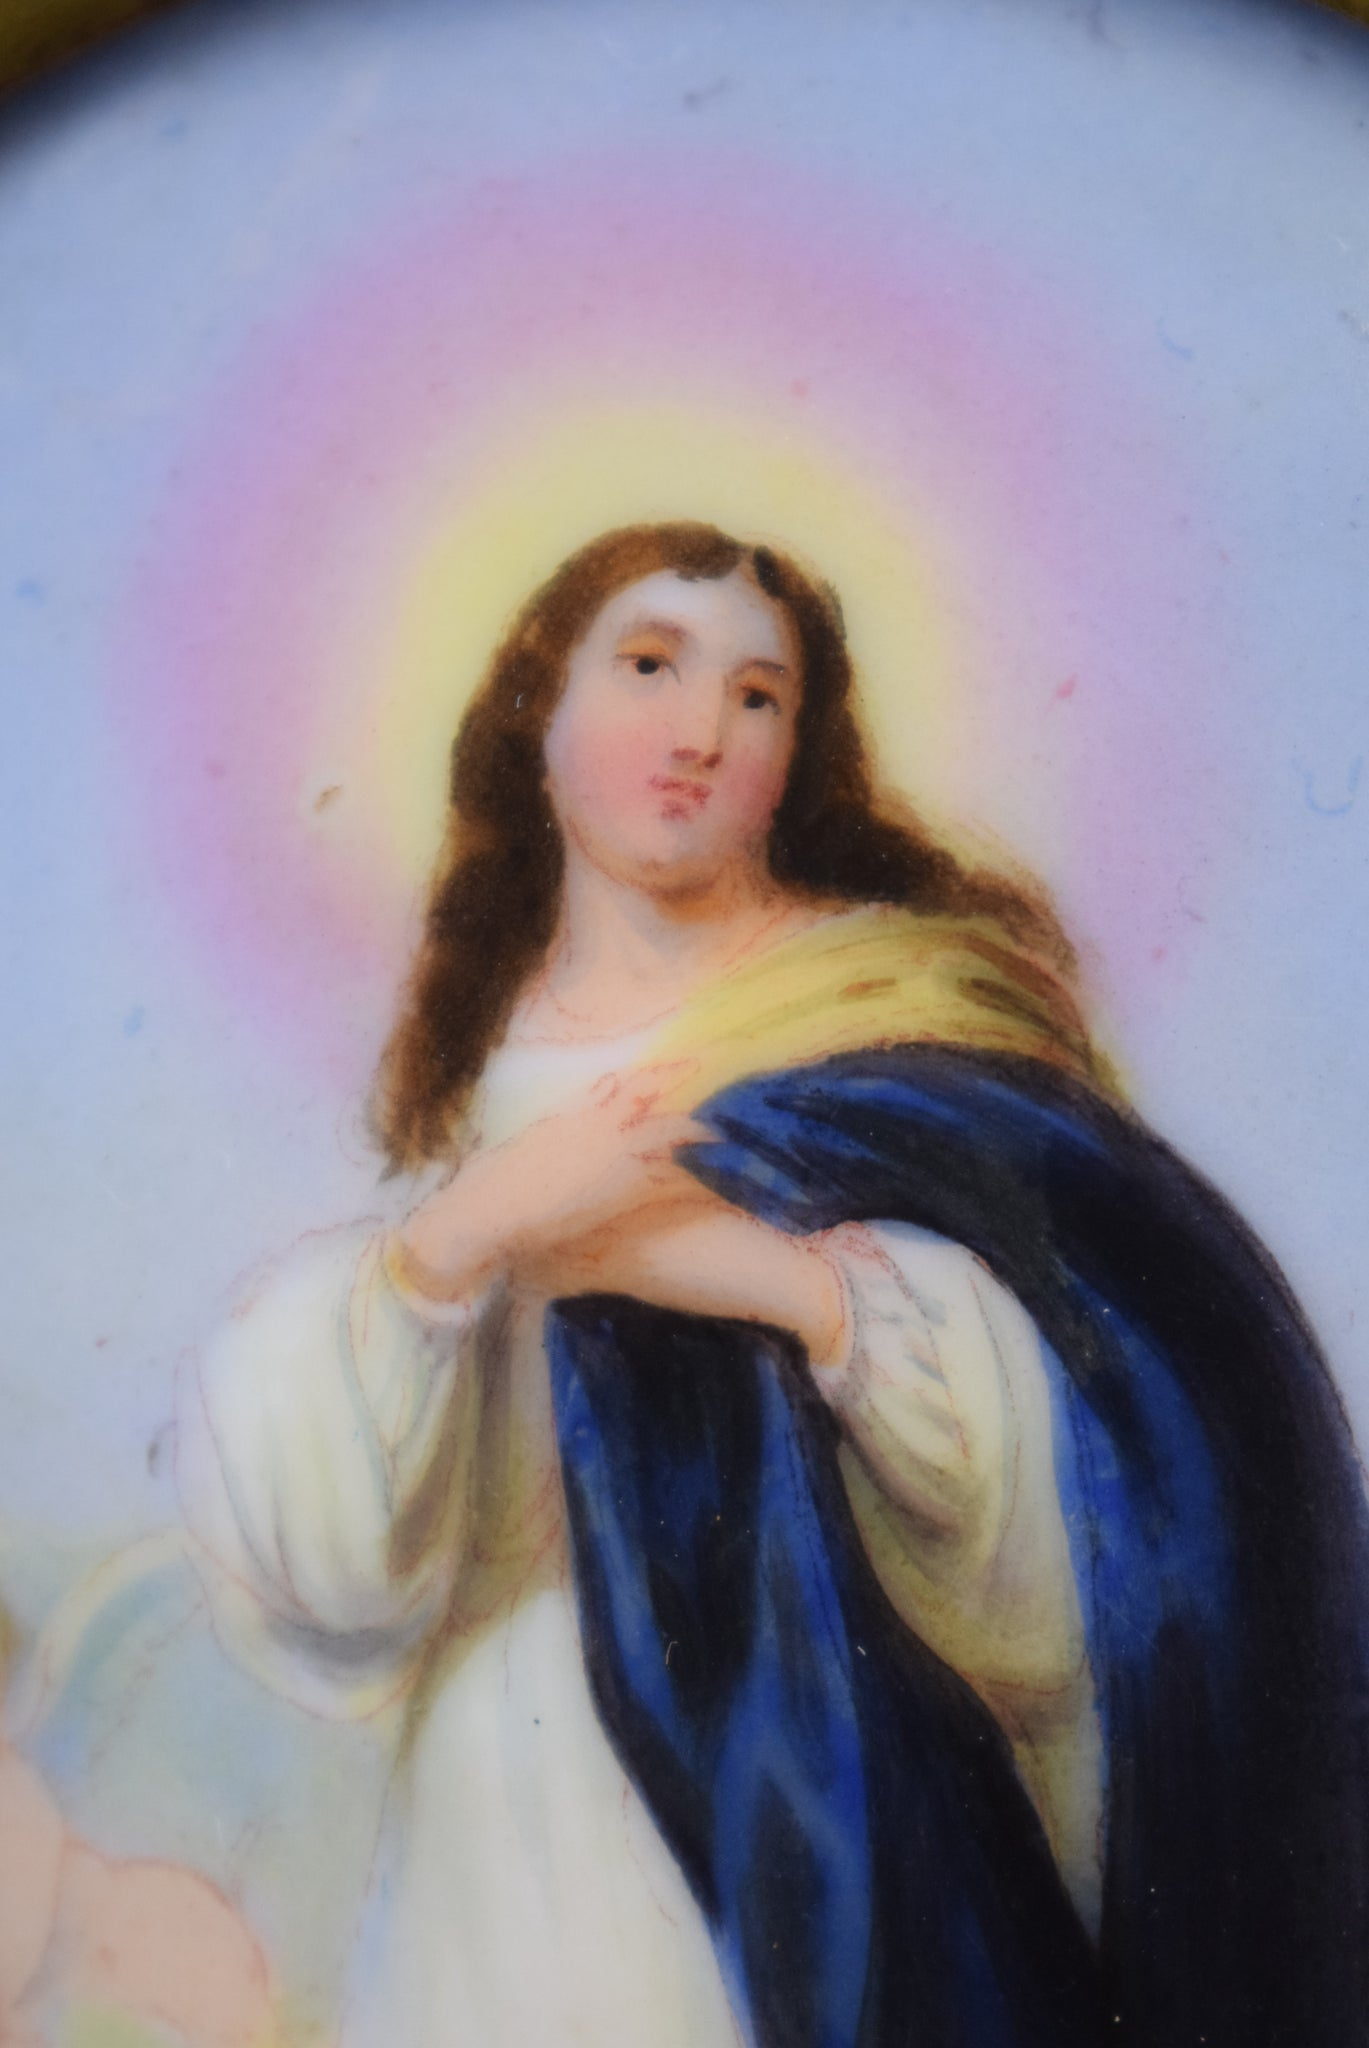 Our Lady Virgin Mary Assumption Angels After Esteban Murillo Porcelain Brass Wall Frame Reliquary